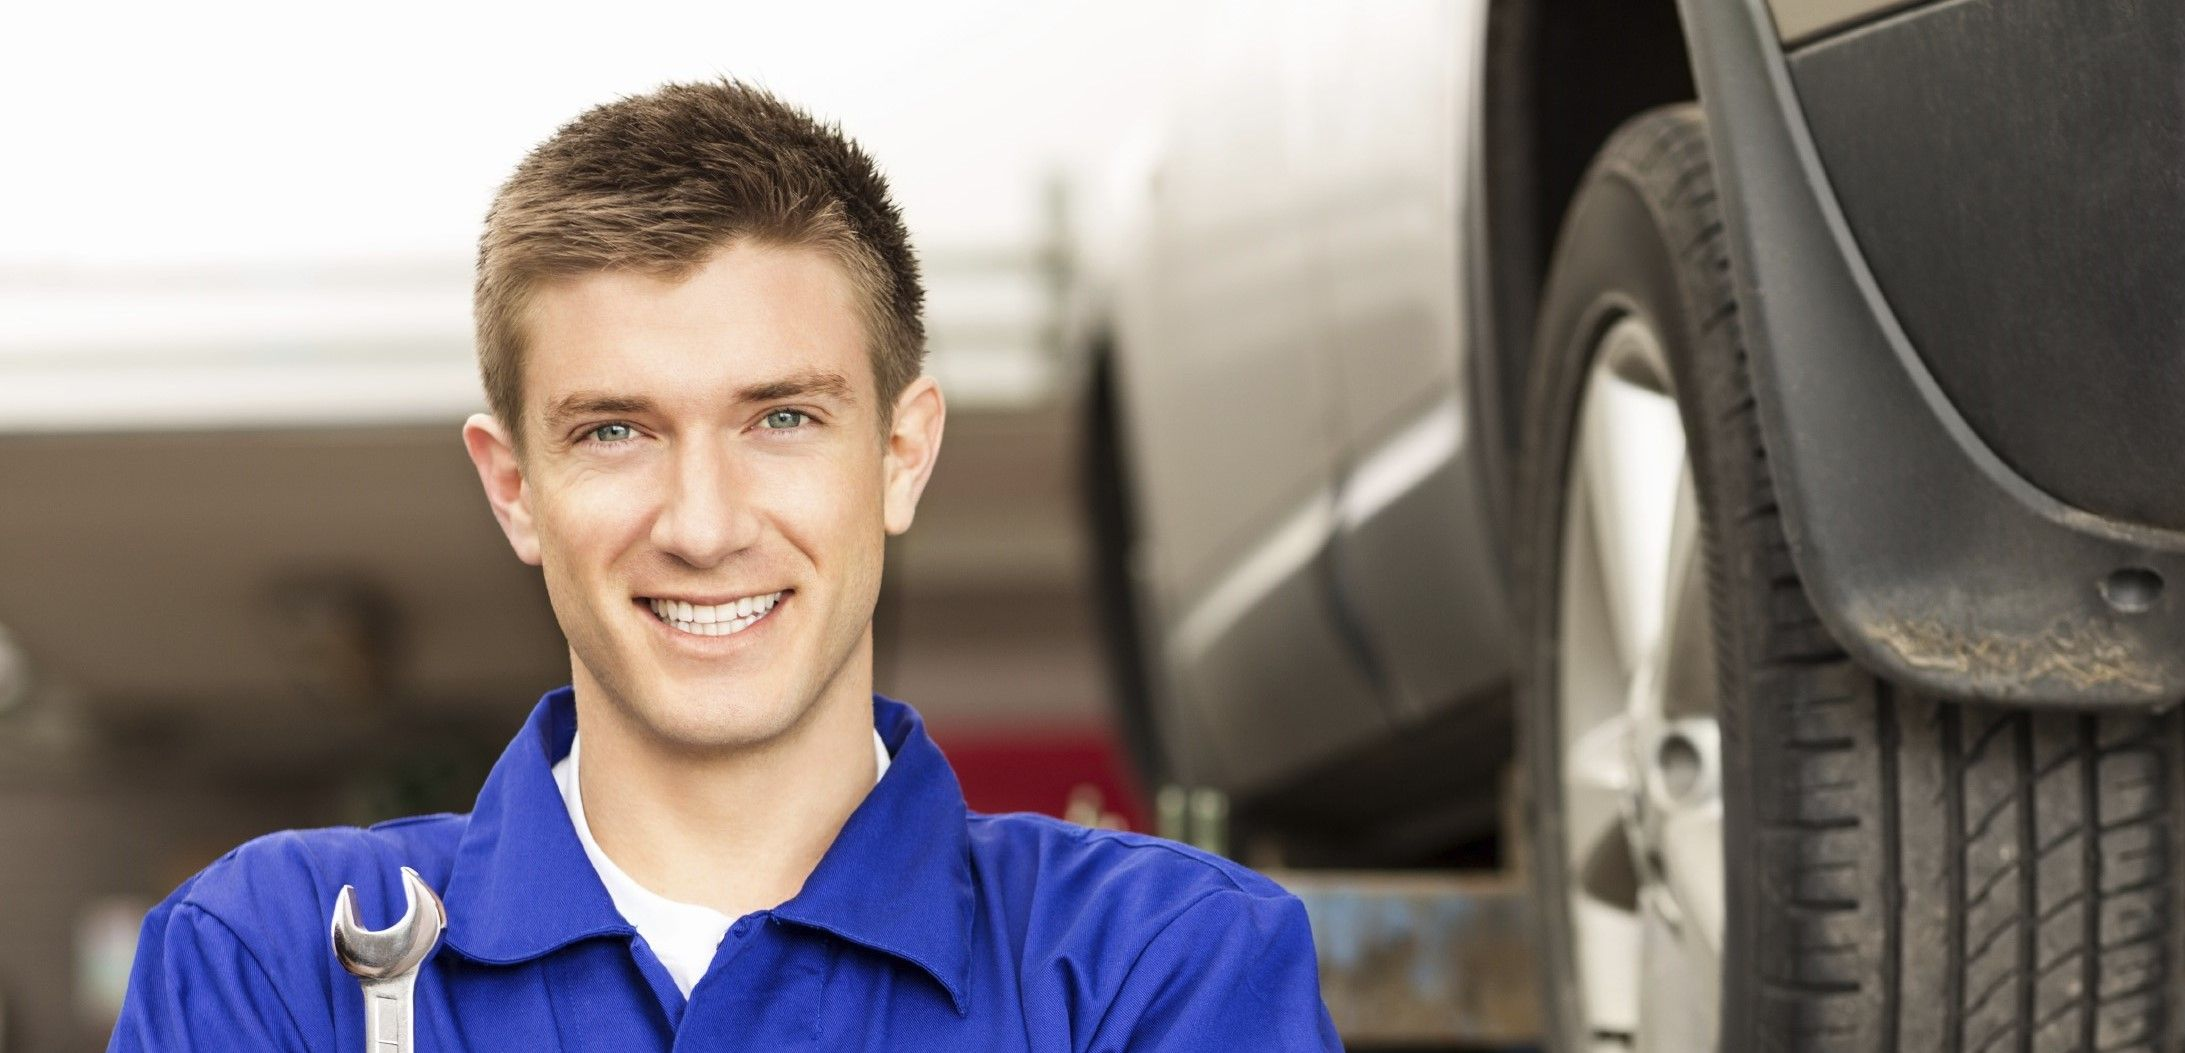 Oil Change Service in St Charles IL McGrath Honda of St Charles